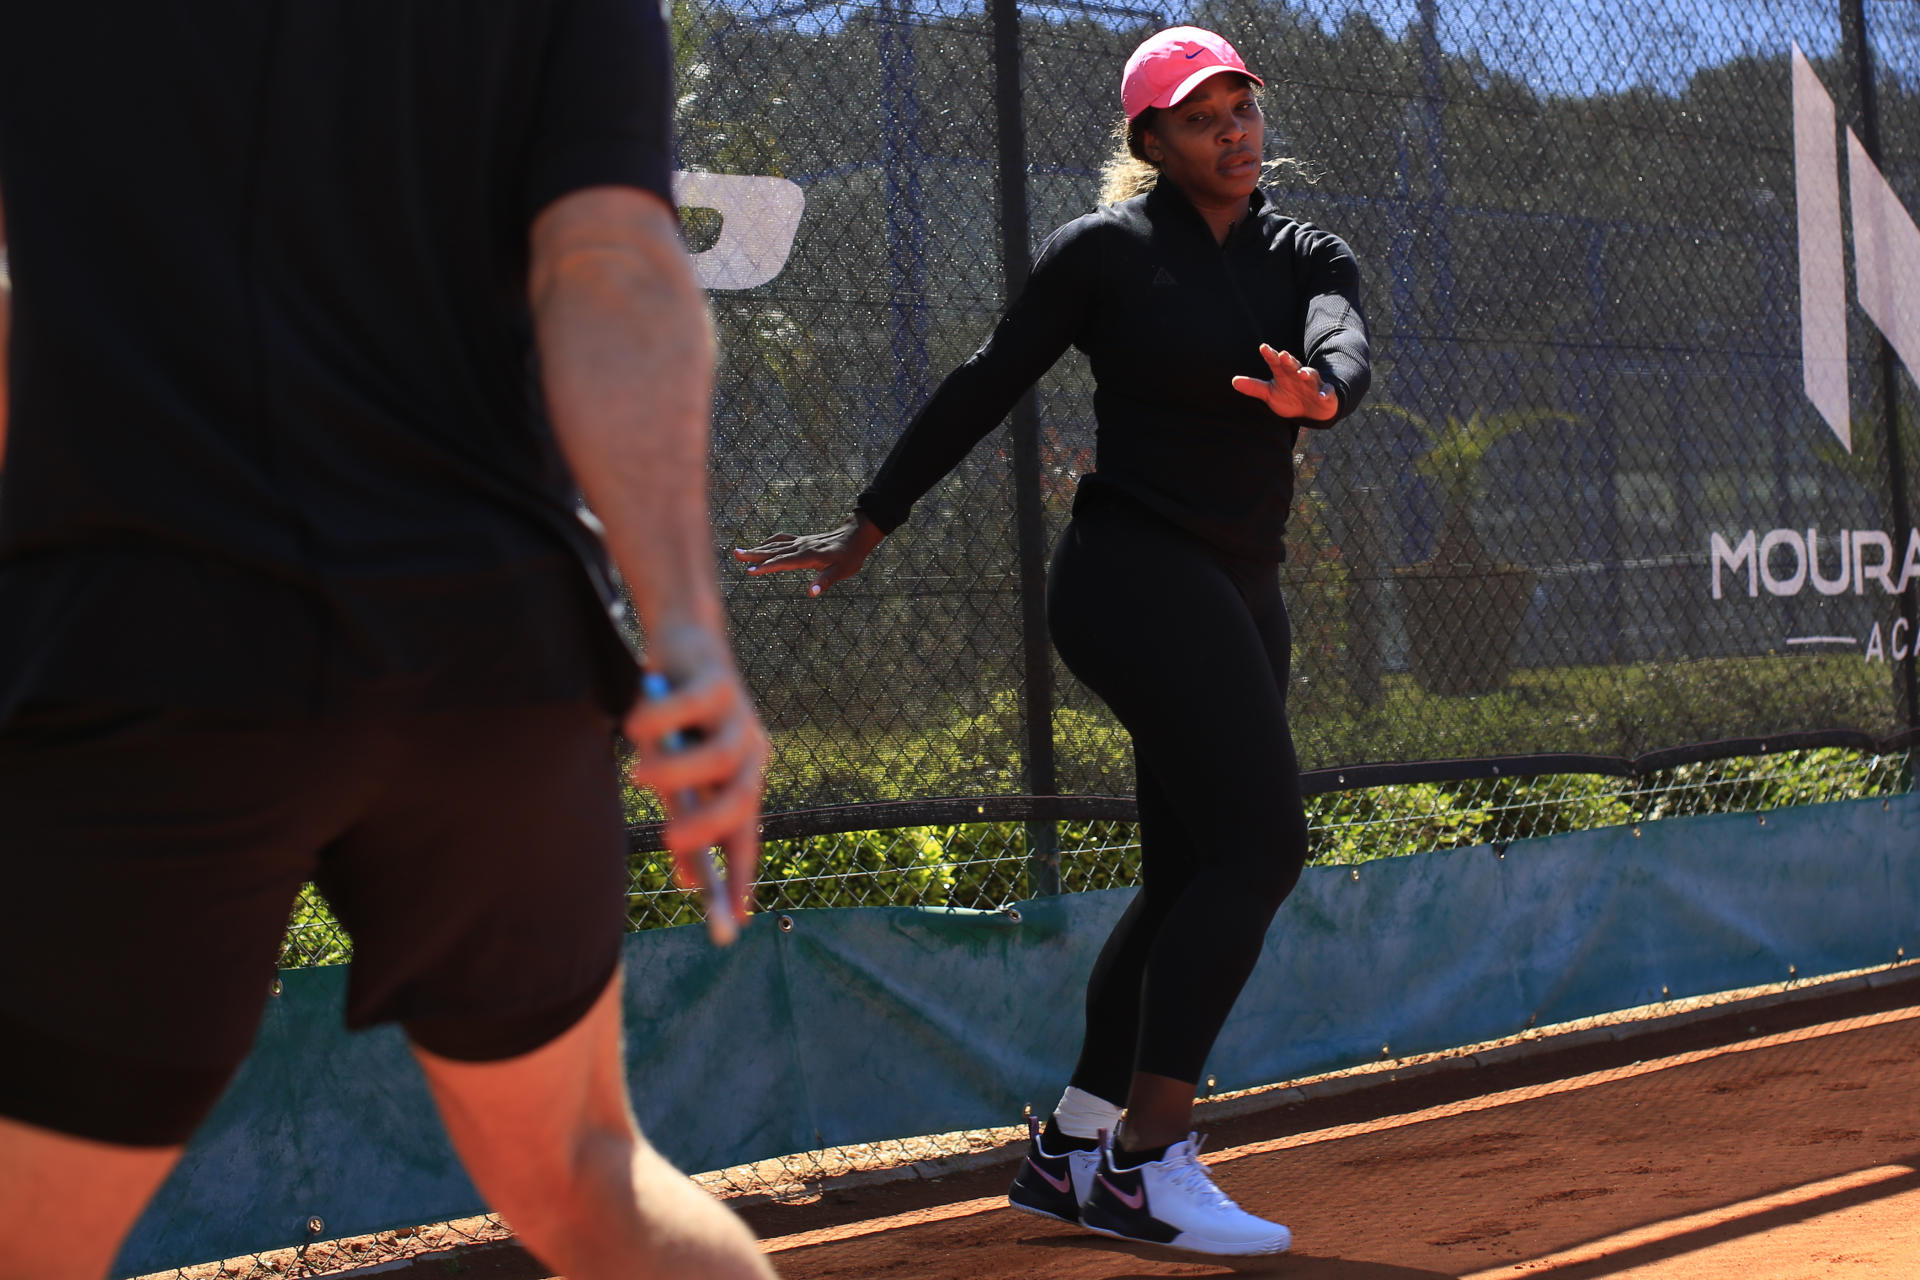 Serena Williams warms up before her training in Biot (Alpes-Maritimes), May 5, 2021.